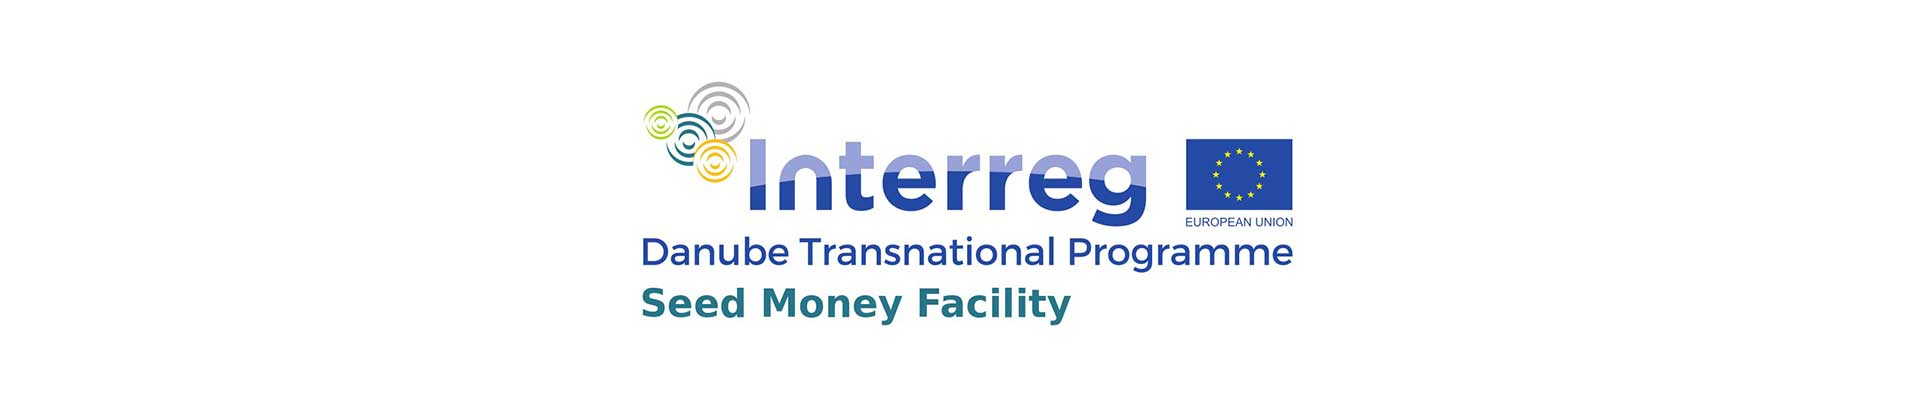 interreg-logo-web